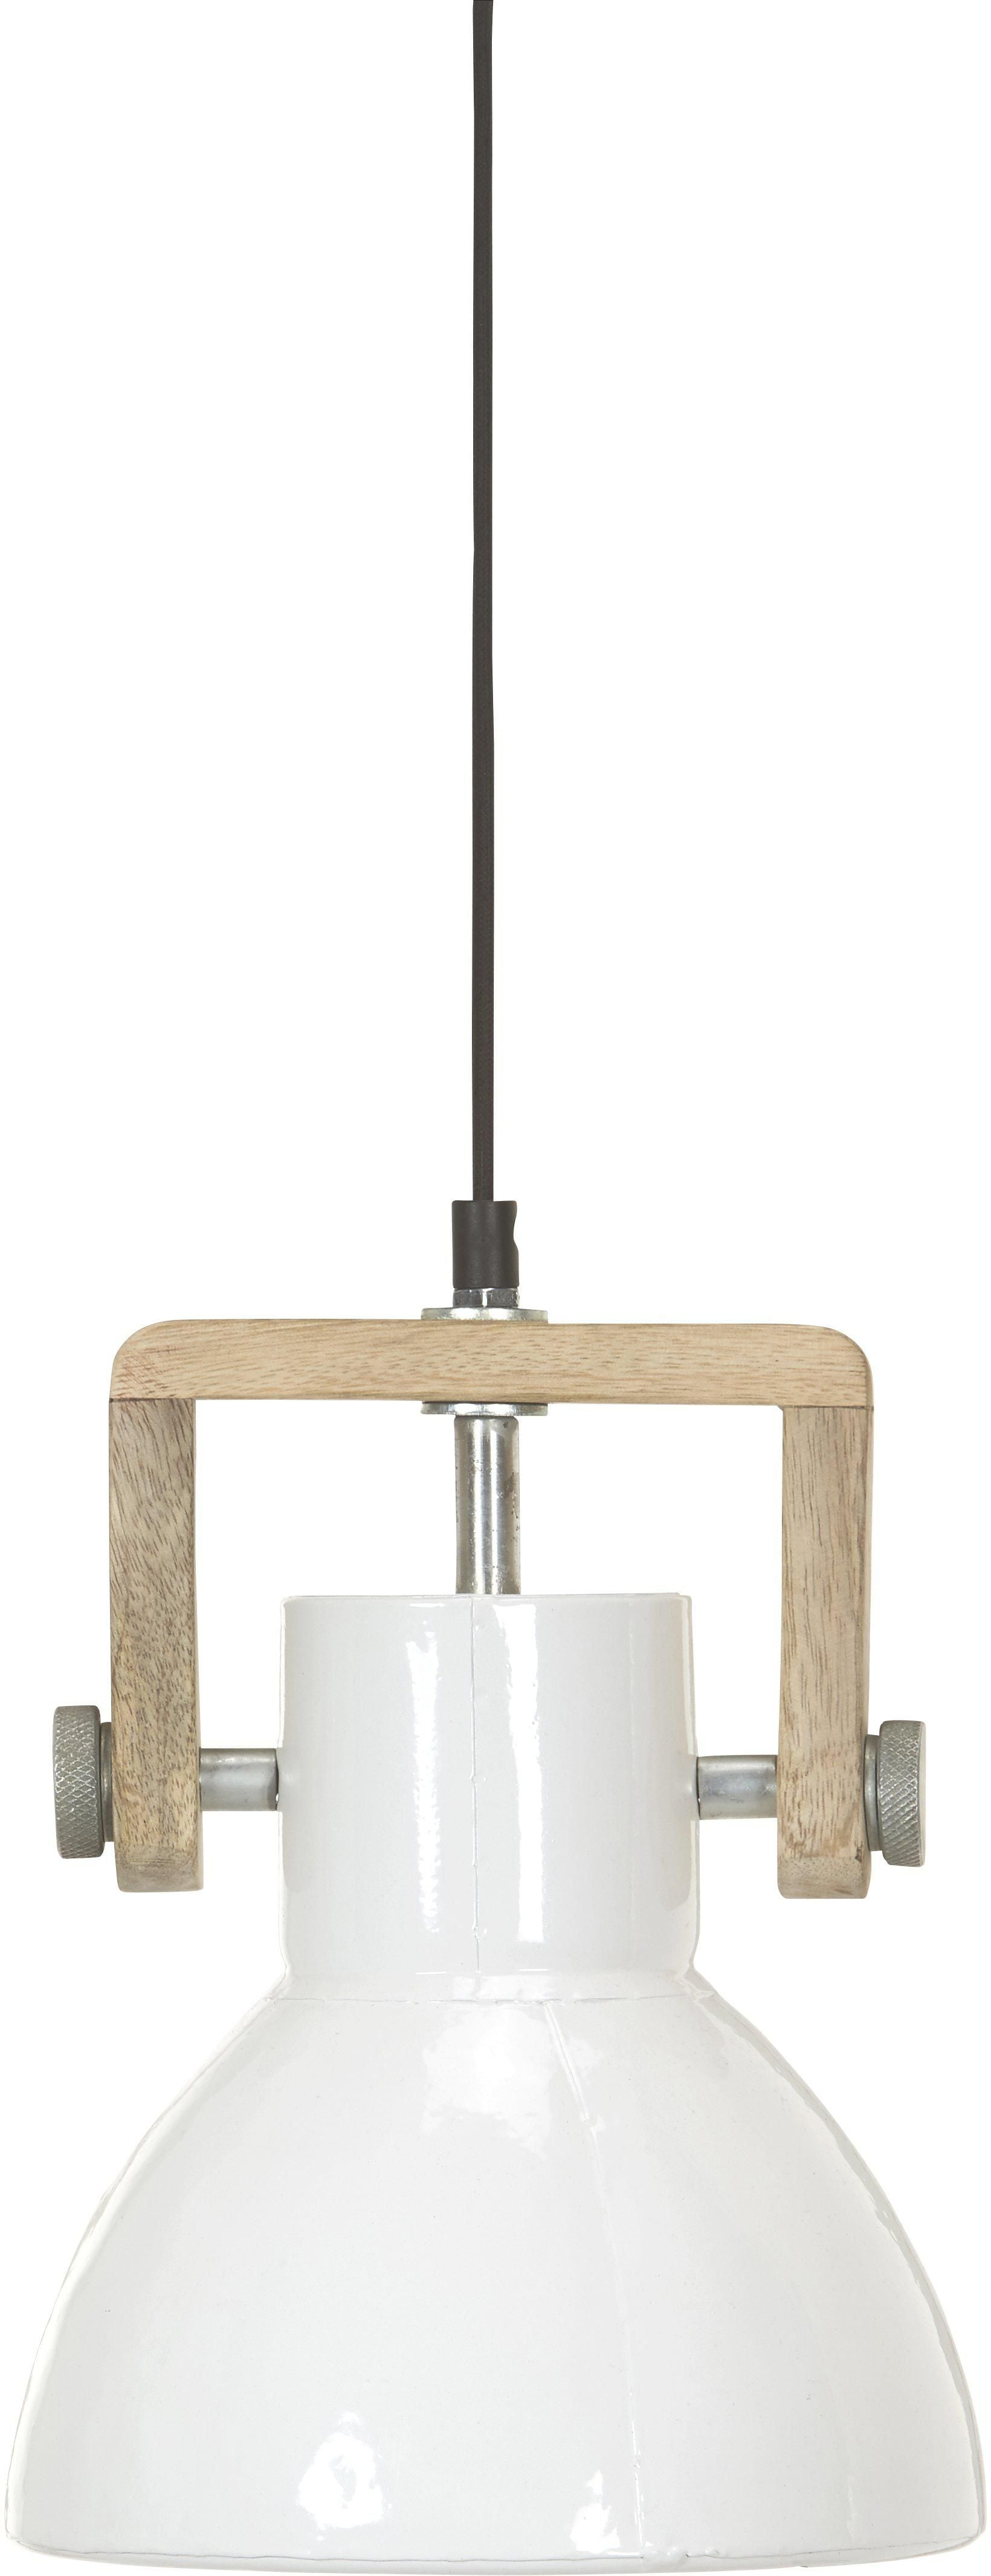 Ashby fönsterlampa 19 vit